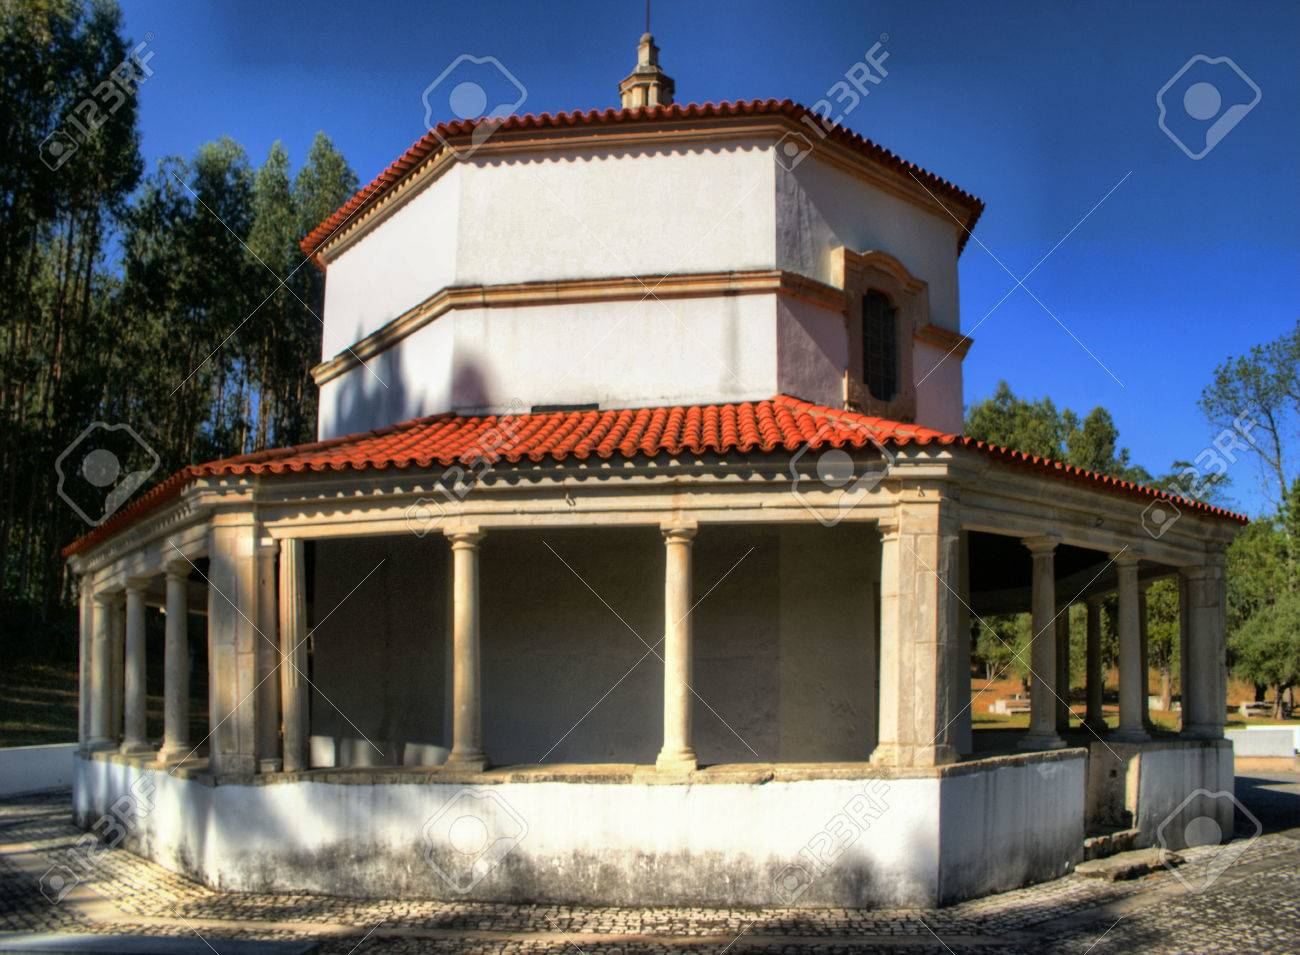 Chapel Our Lady of Seica, Figueira da Foz, Portugal Stock Photo - 78253277